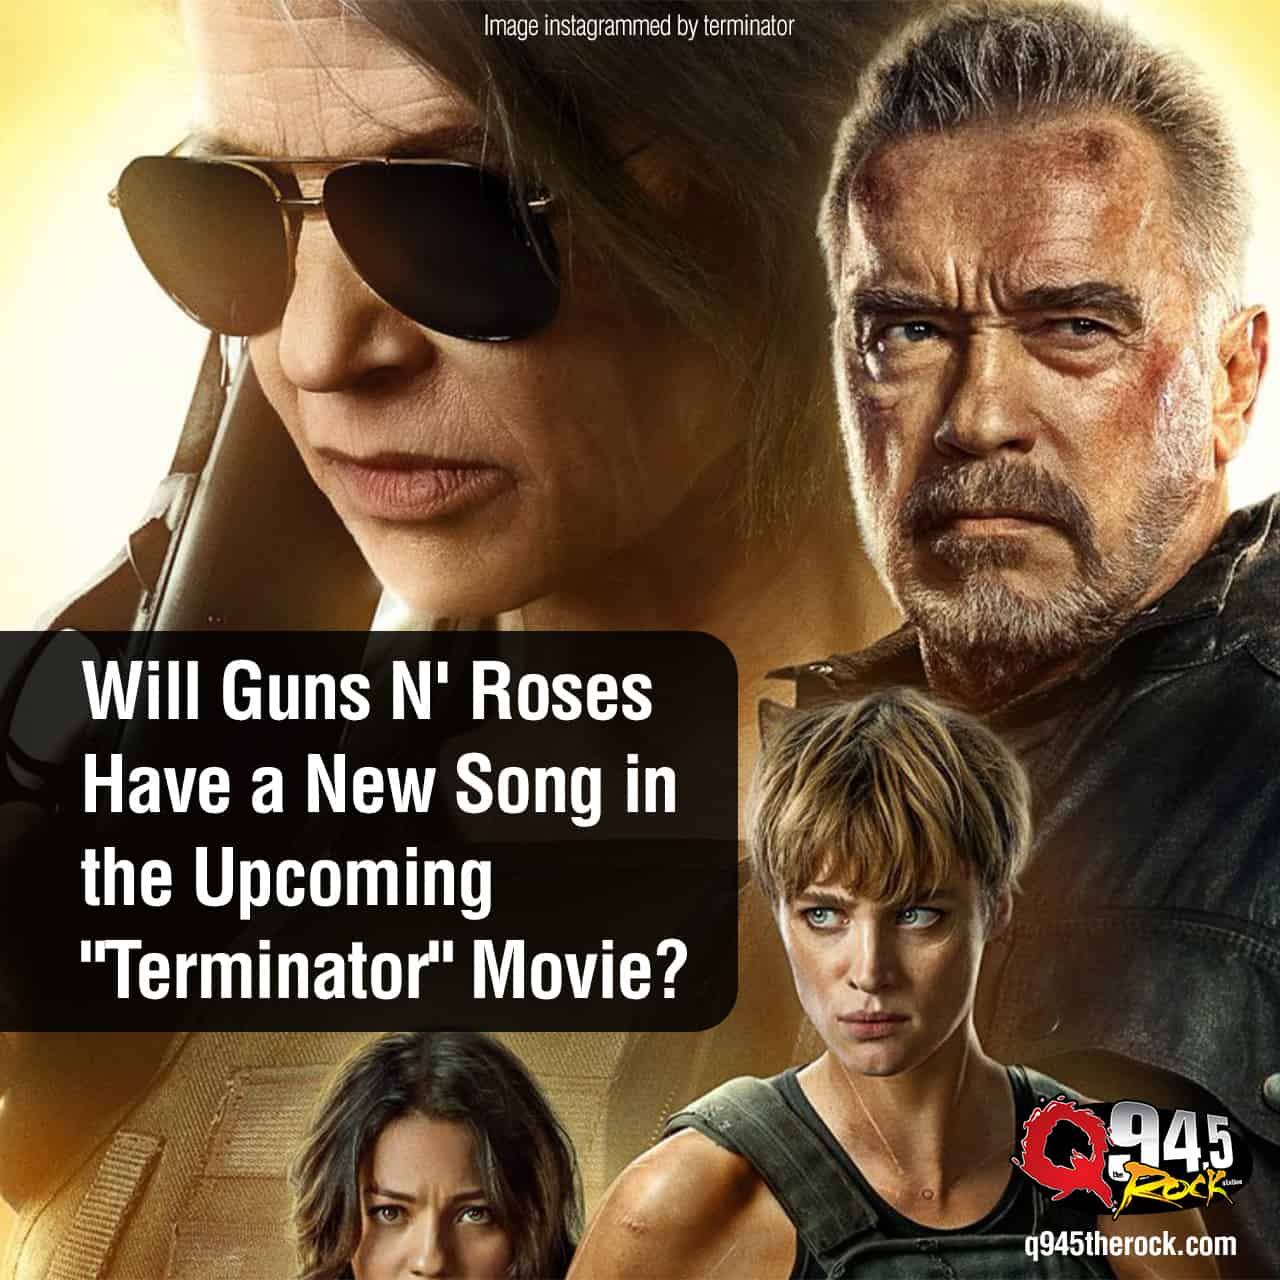 "Will Guns N' Roses Have a New Song in the Upcoming ""Terminator"" Movie?"